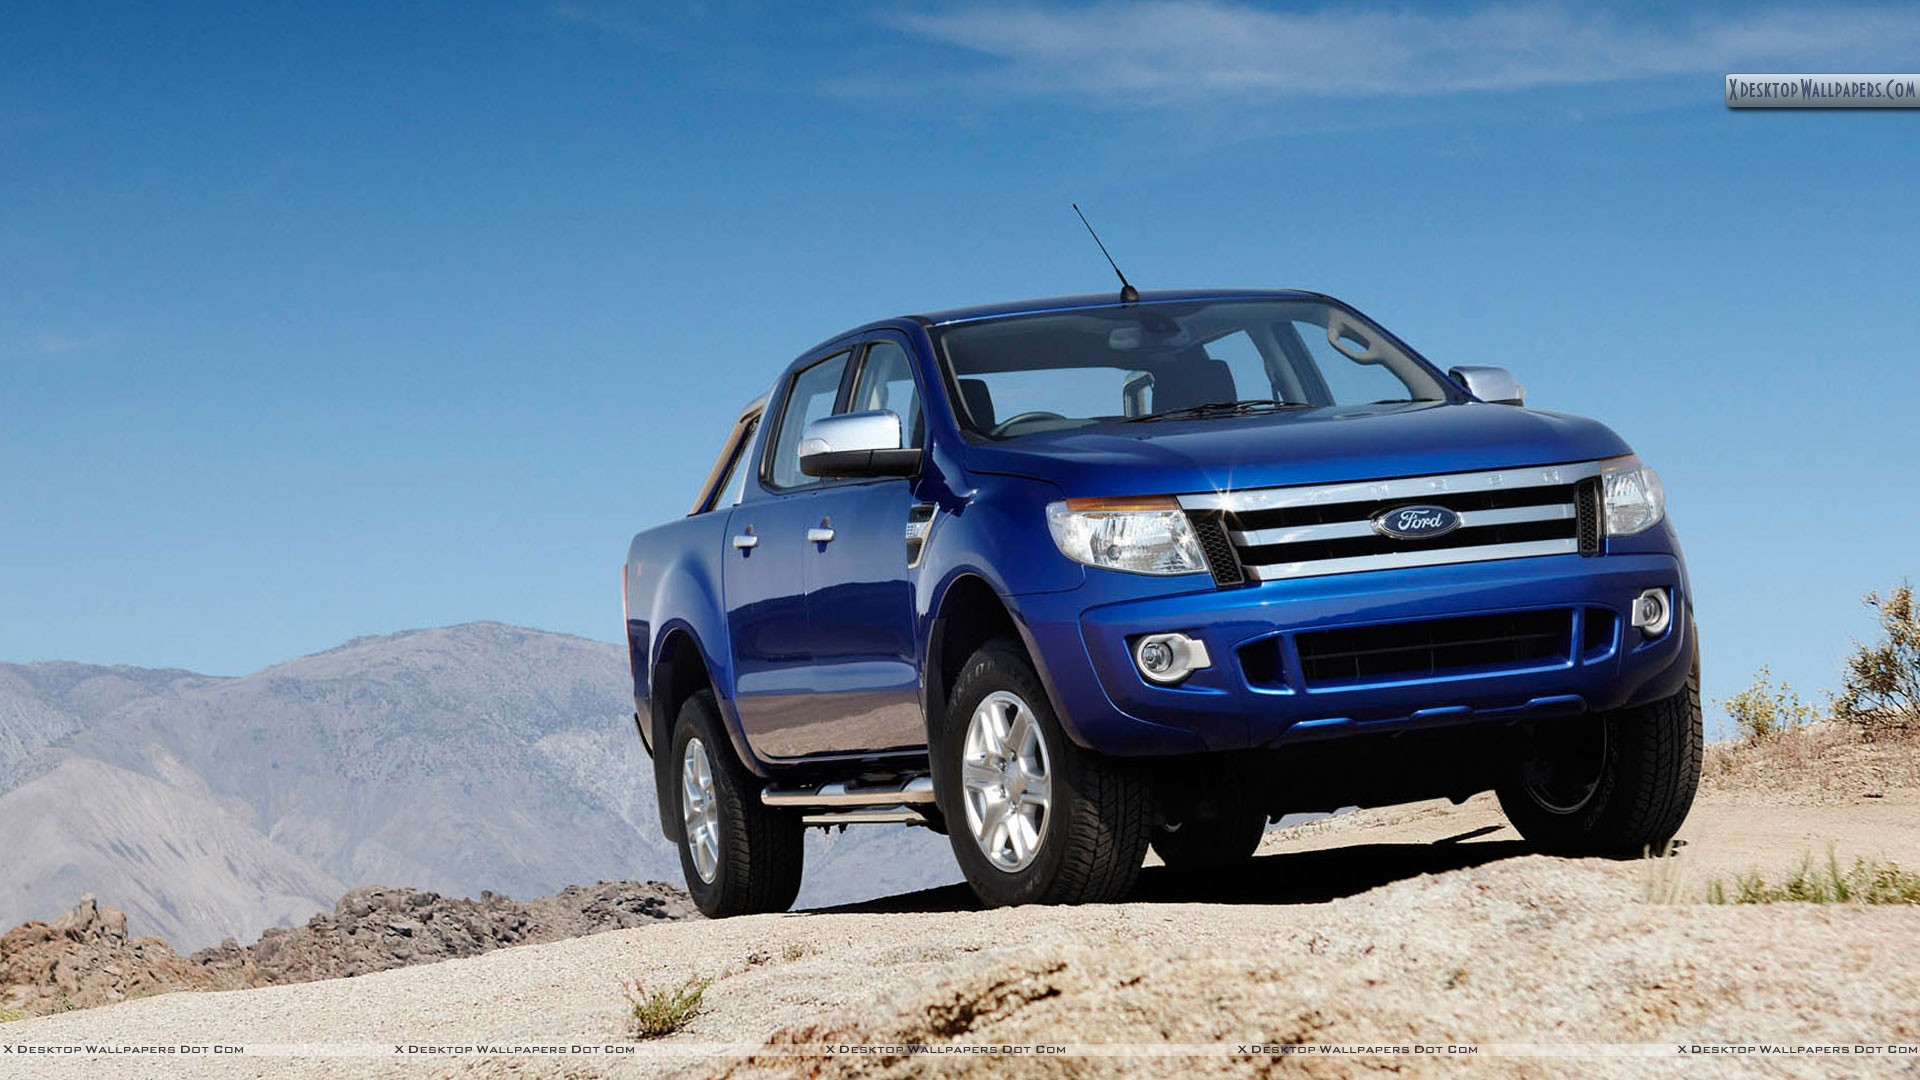 1920x1080 - Ford Ranger Wallpapers 25